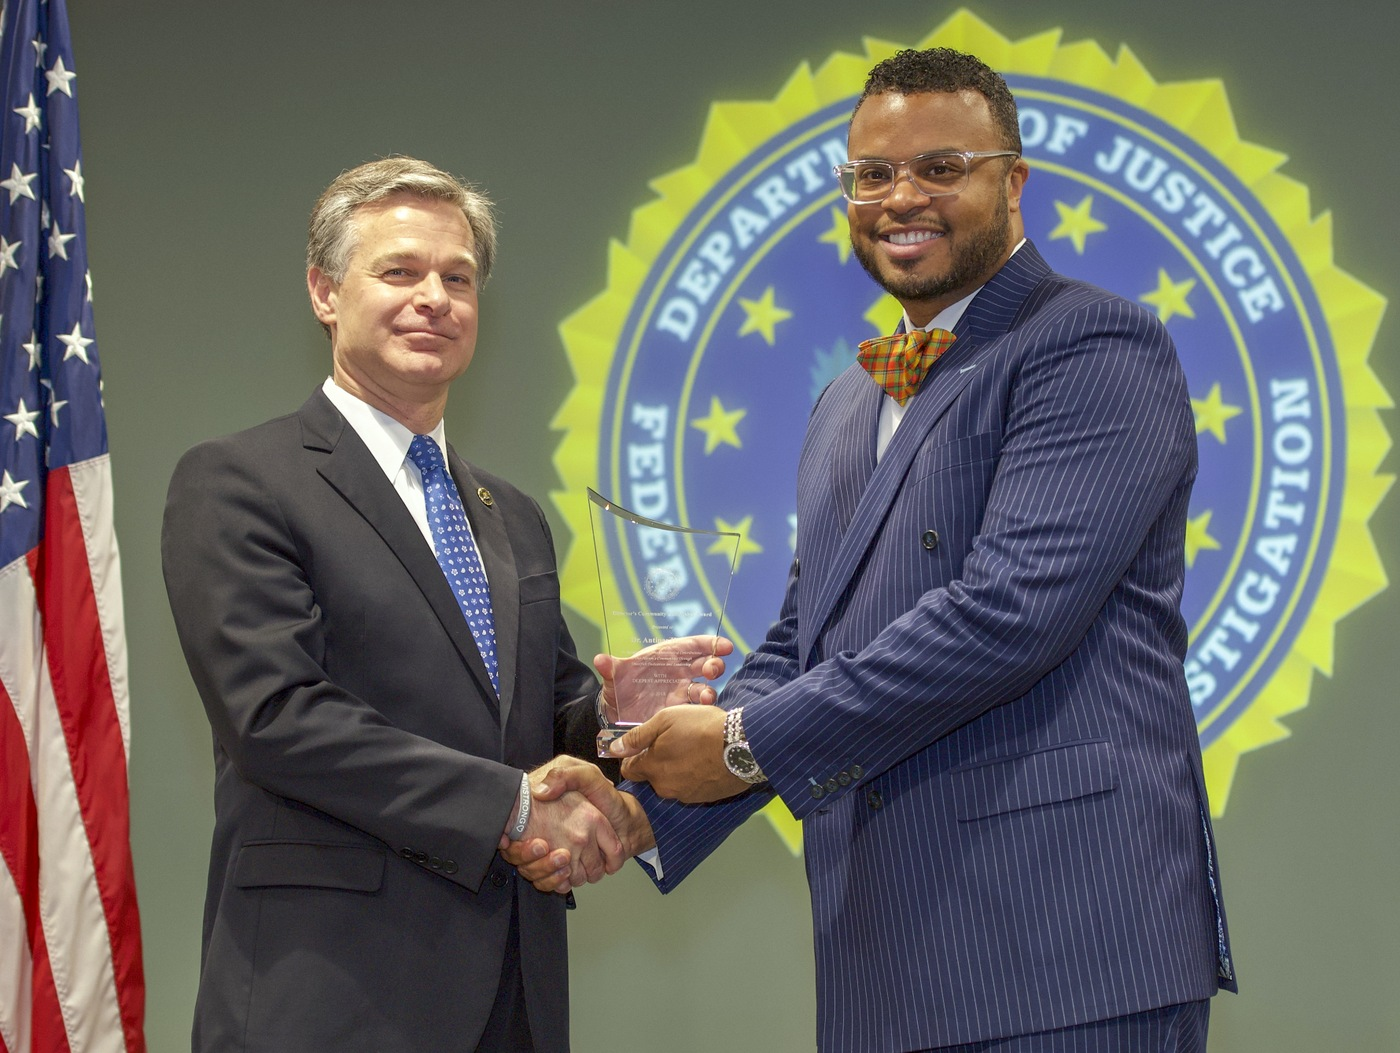 FBI Director Christopher Wray presents Norfolk Division recipient Dr. Antipas Harris with the Director's Community Leadership Award (DCLA) at a ceremony at FBI Headquarters on May 3, 2019.